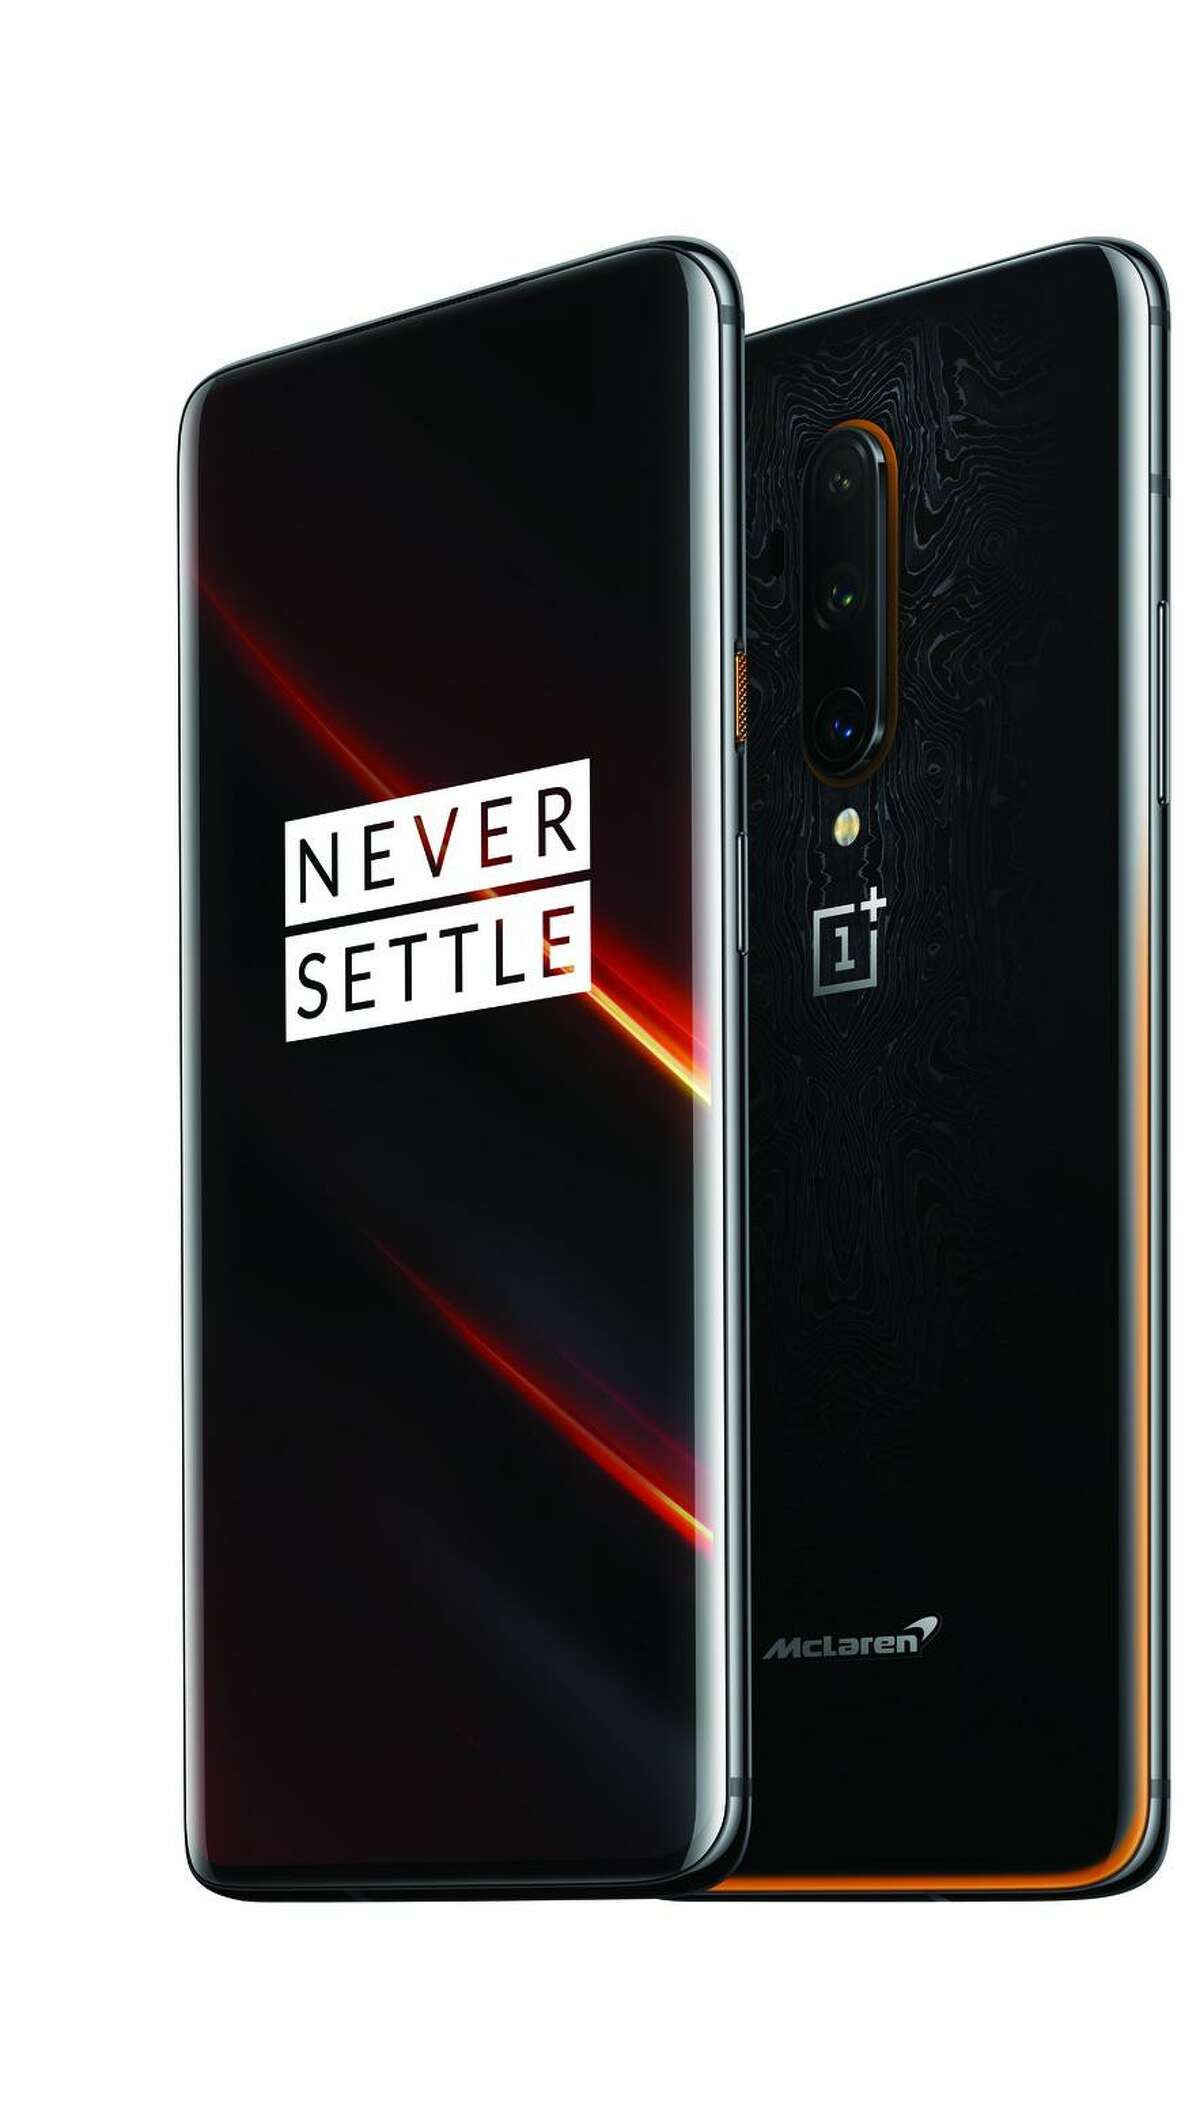 The OnePlus 7T Pro 5G McLaren is one of two phones that will work on T-Mobile's new 5G network.